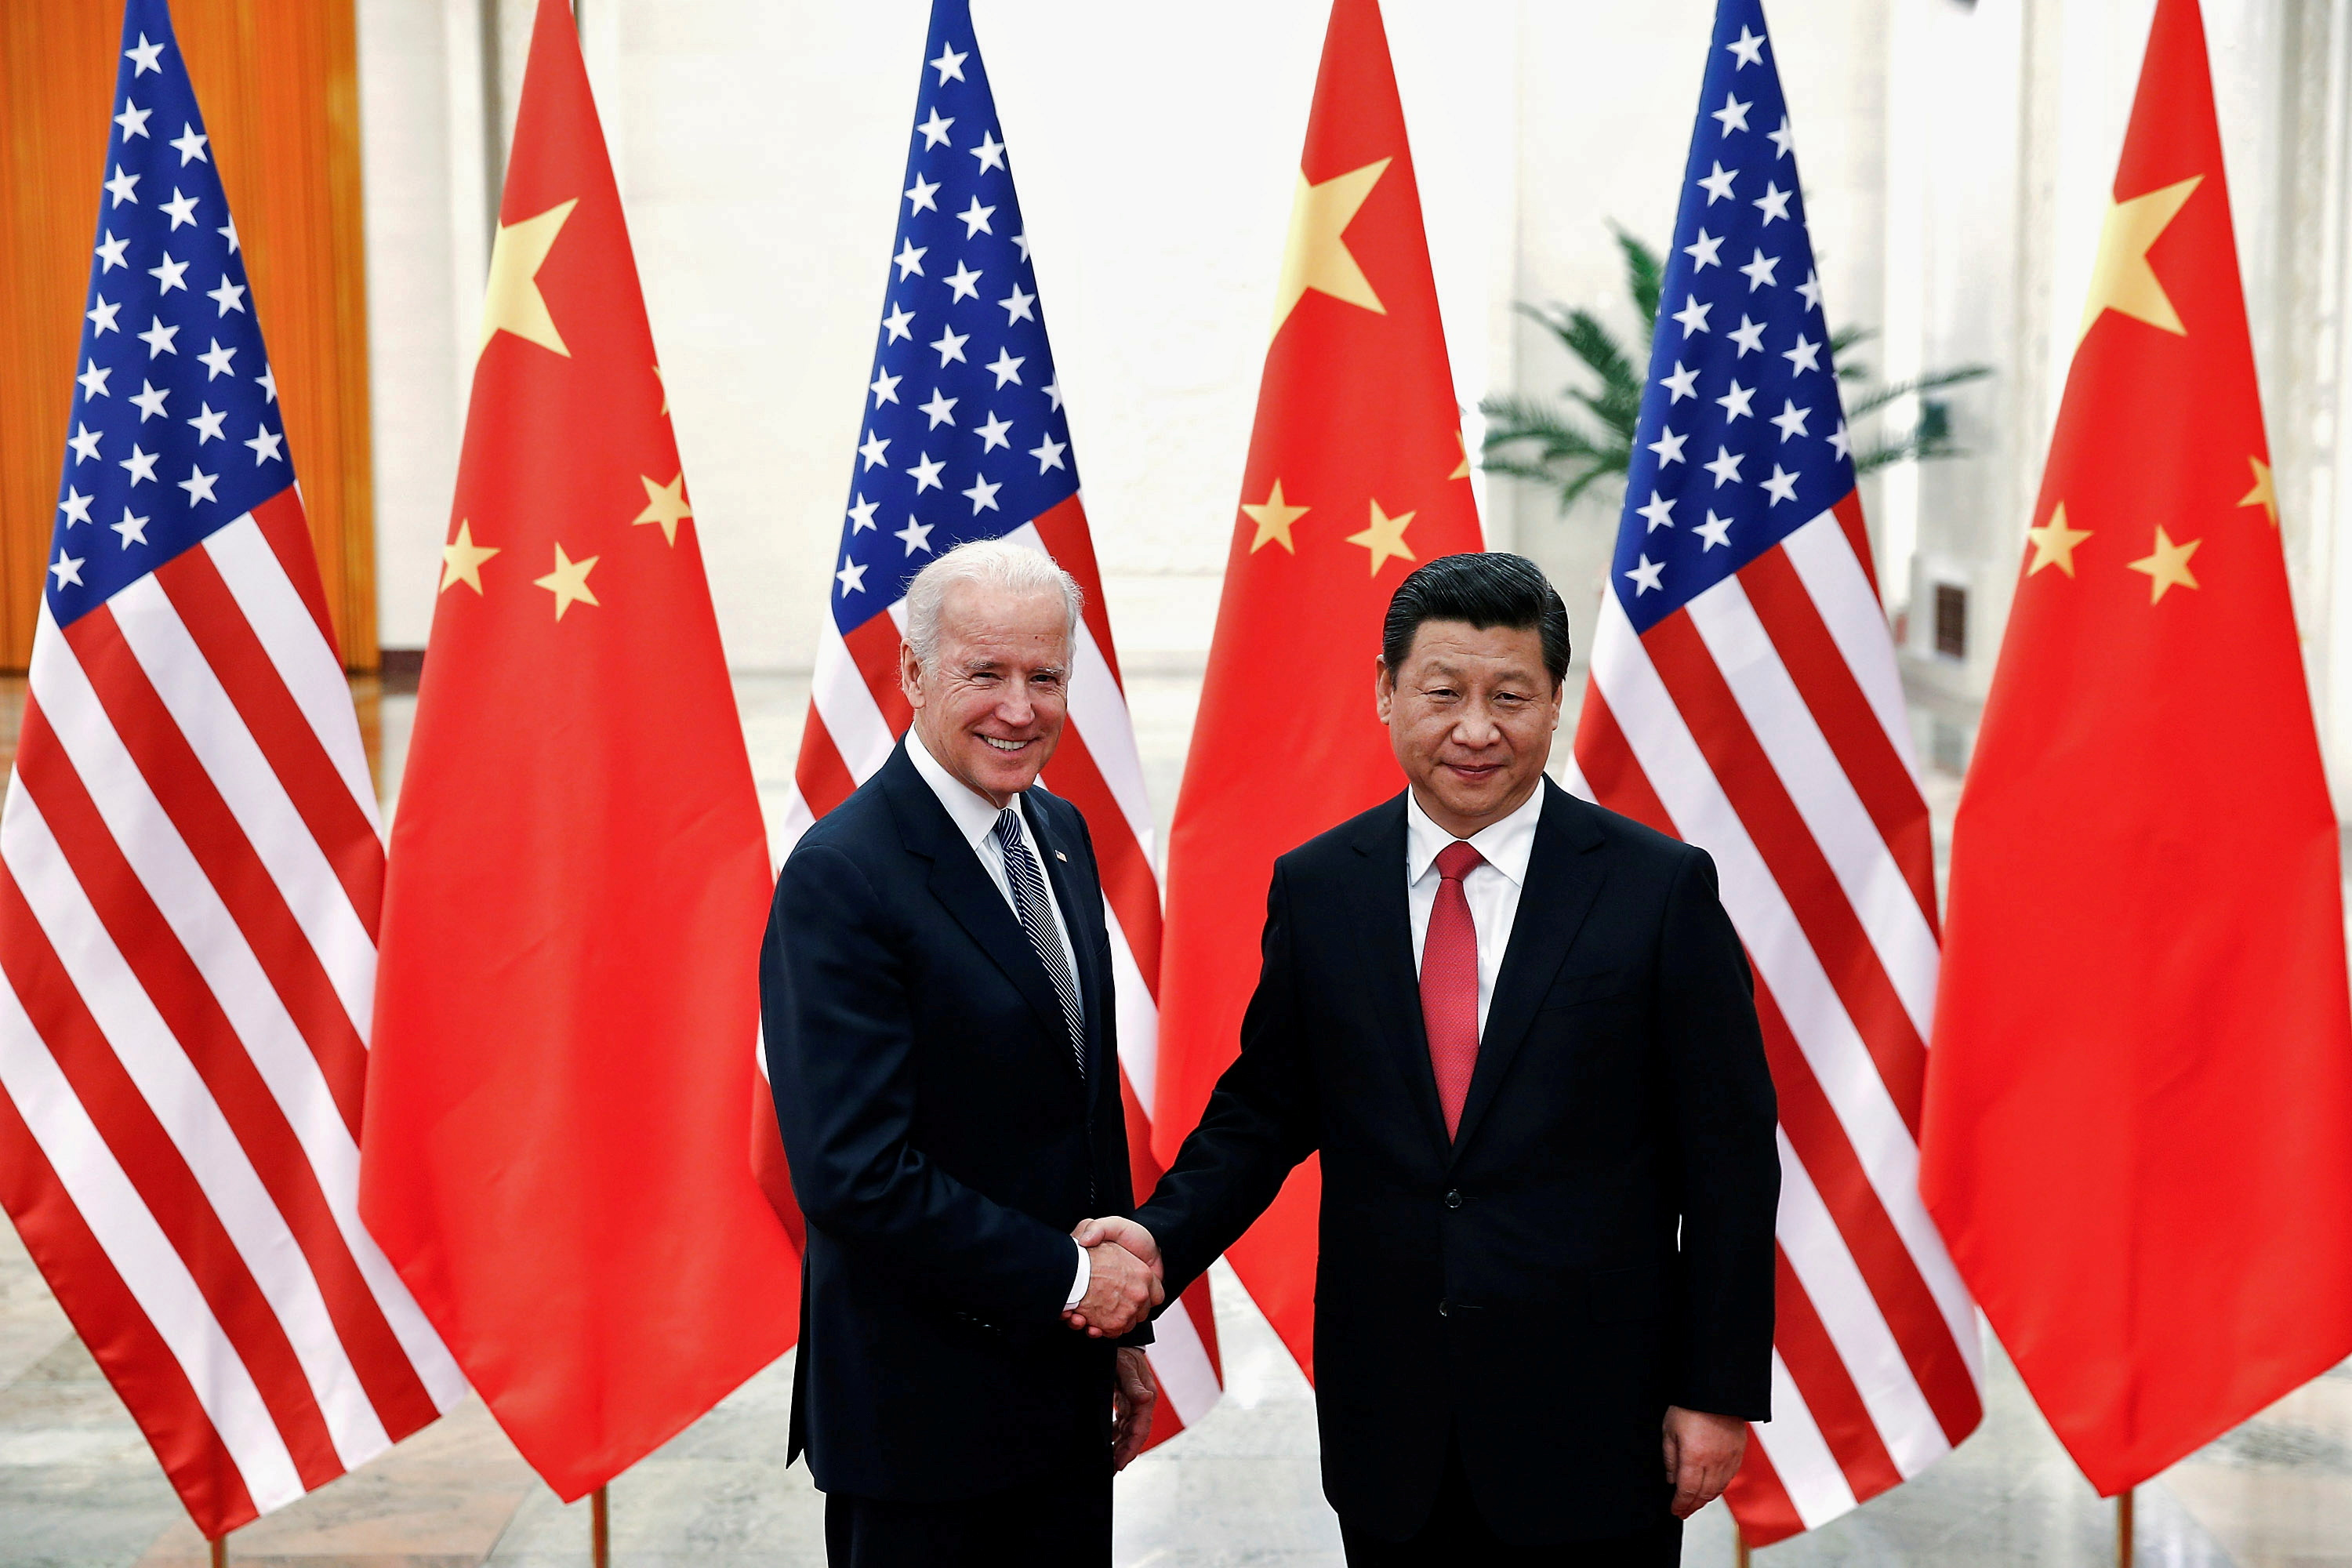 Chinese President Xi Jinping shakes hands with then-U.S. Vice President Joe Biden (L) inside the Great Hall of the People in Beijing December 4, 2013. REUTERS/Lintao Zhang/Pool/File Photo